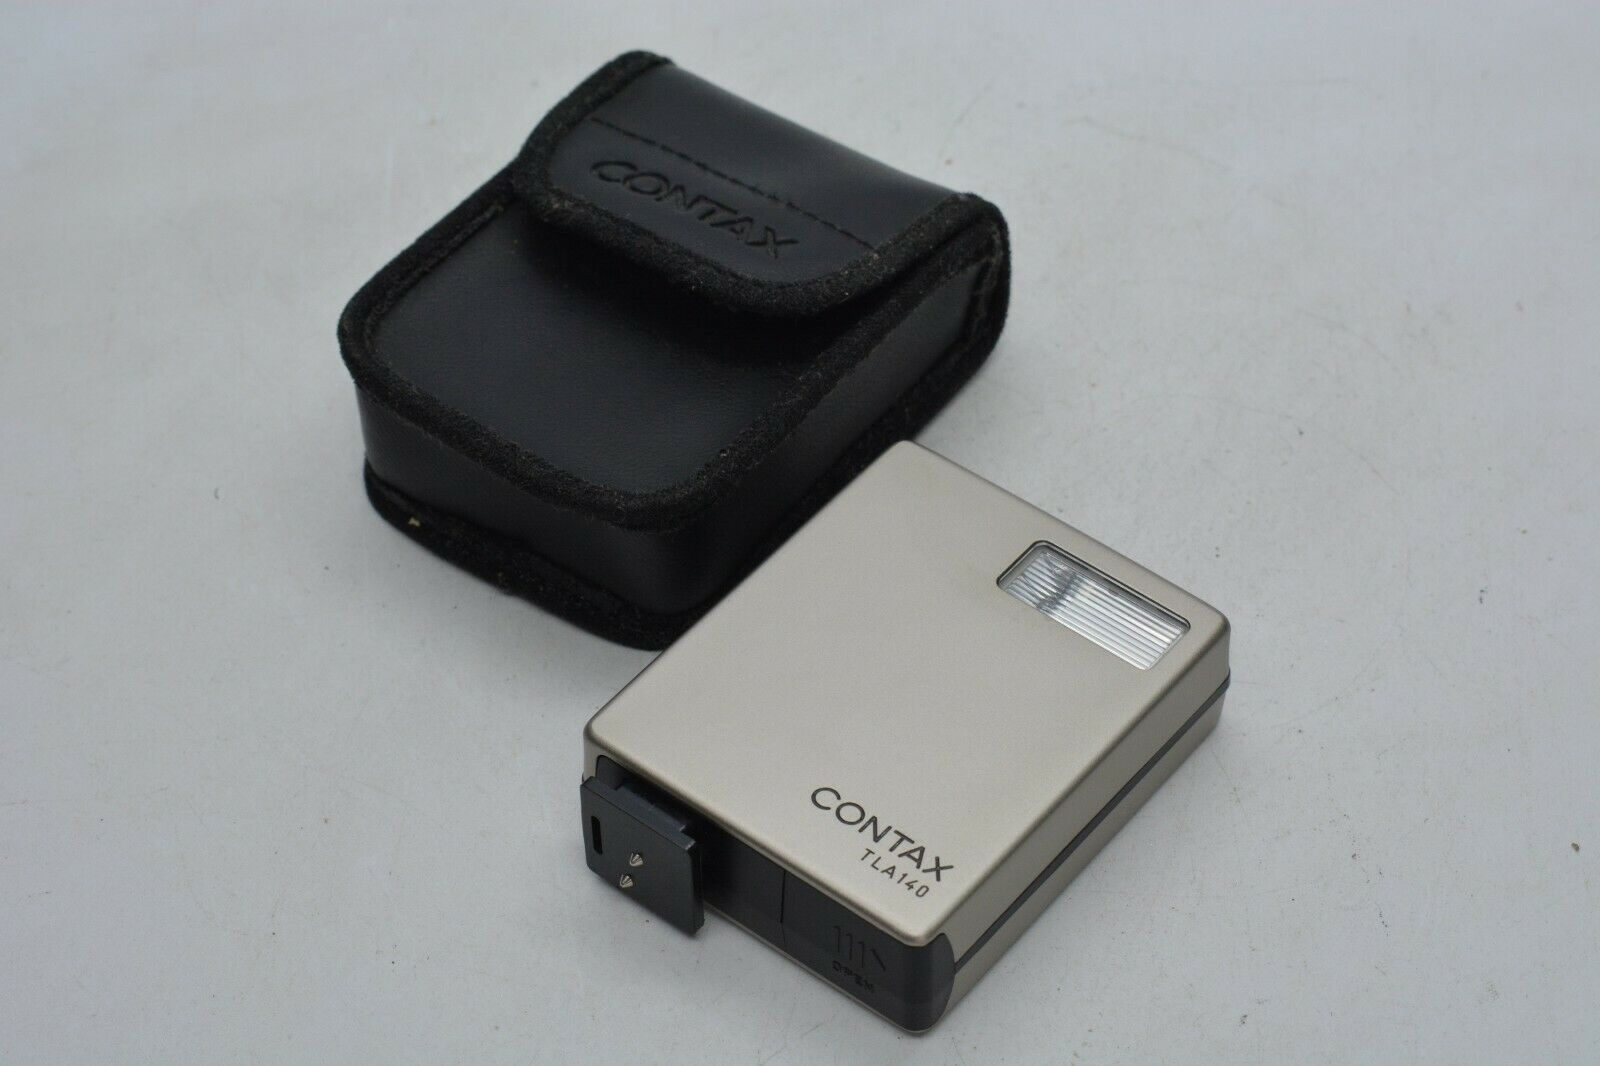 [Mint in Case] Contax TLA140 Shoe Mount Flash for G1 G2 From Japan #1272